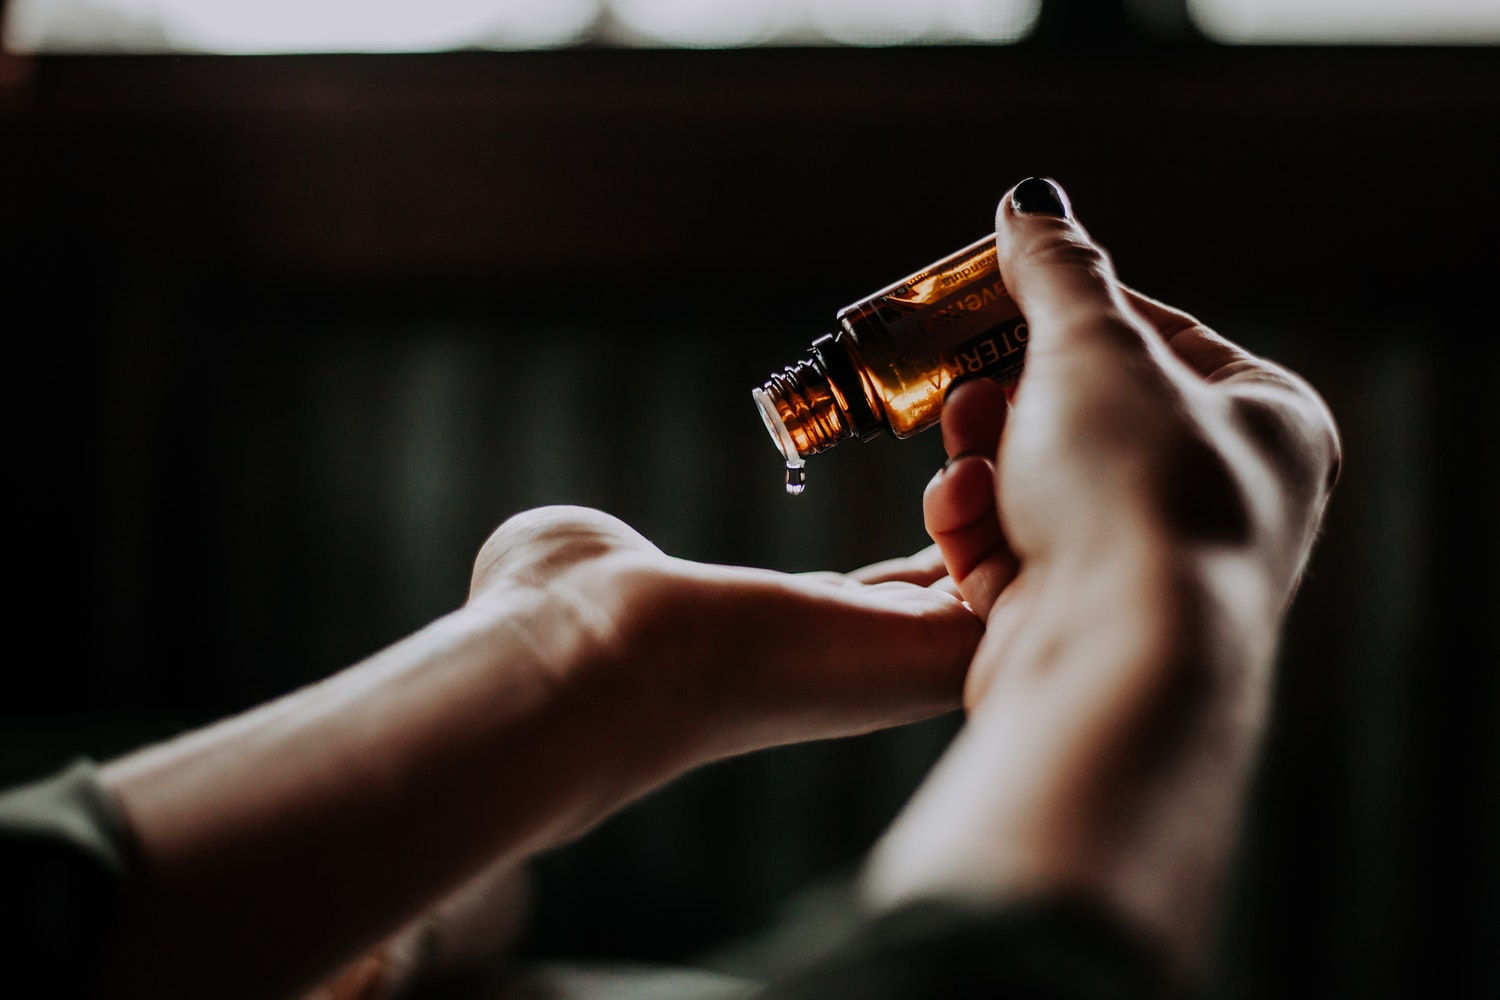 two hands pictured with one pouring a small bottle of essential oils into the other.